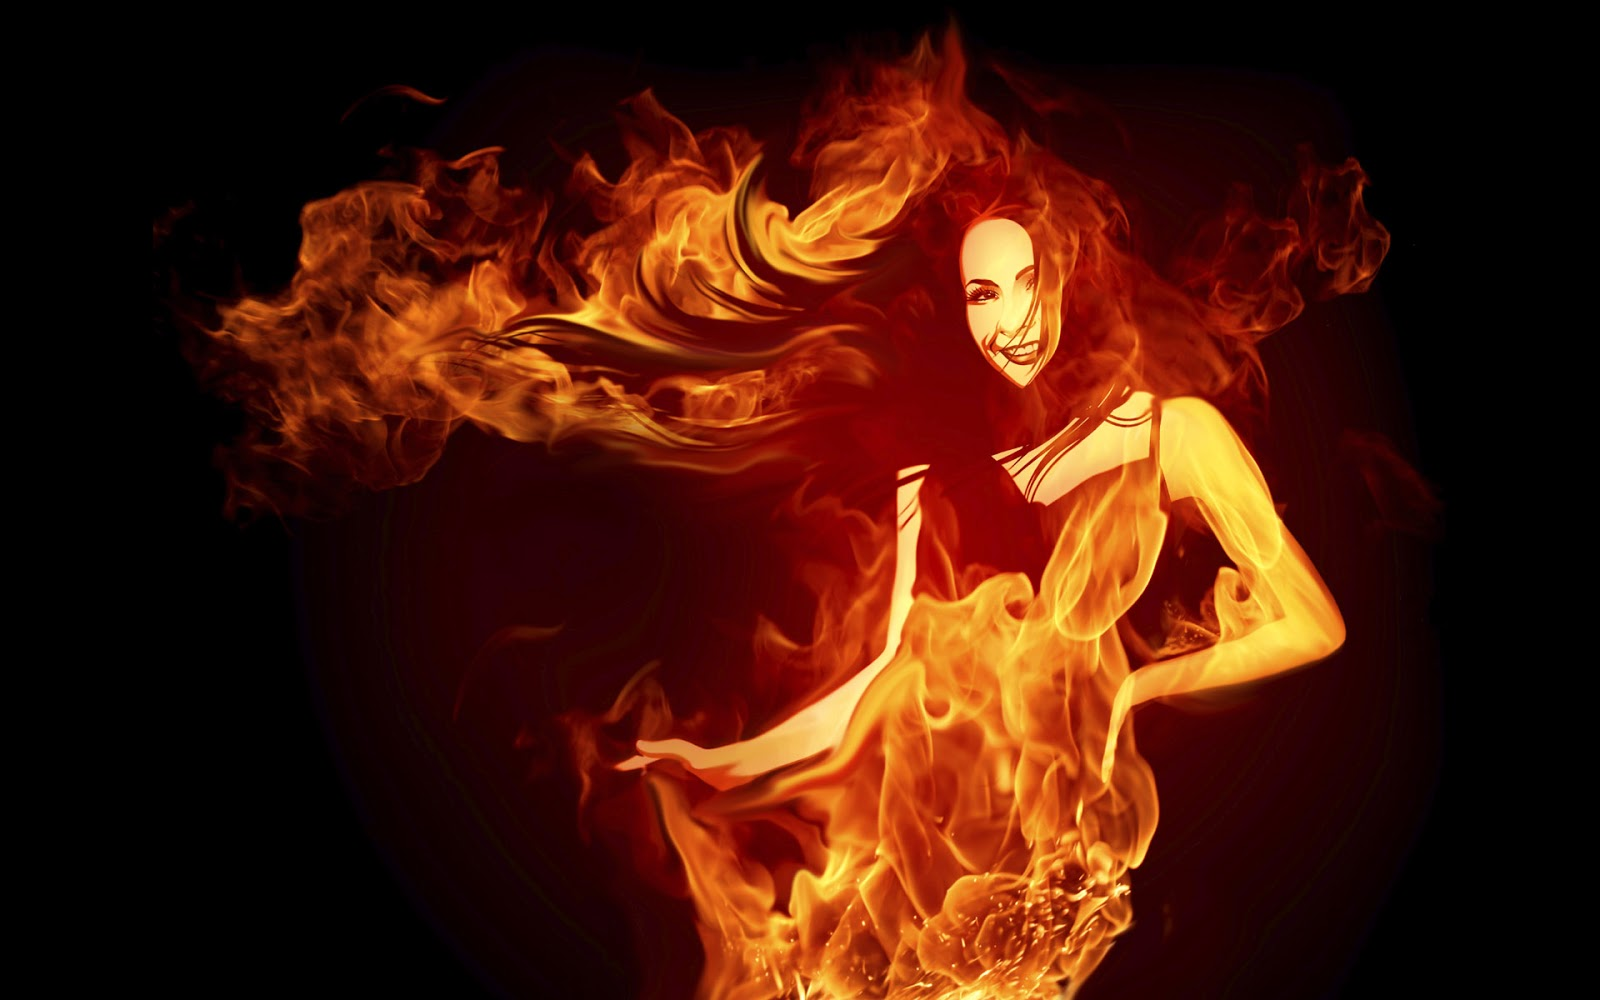 hd wallpapers desktop fire - photo #47